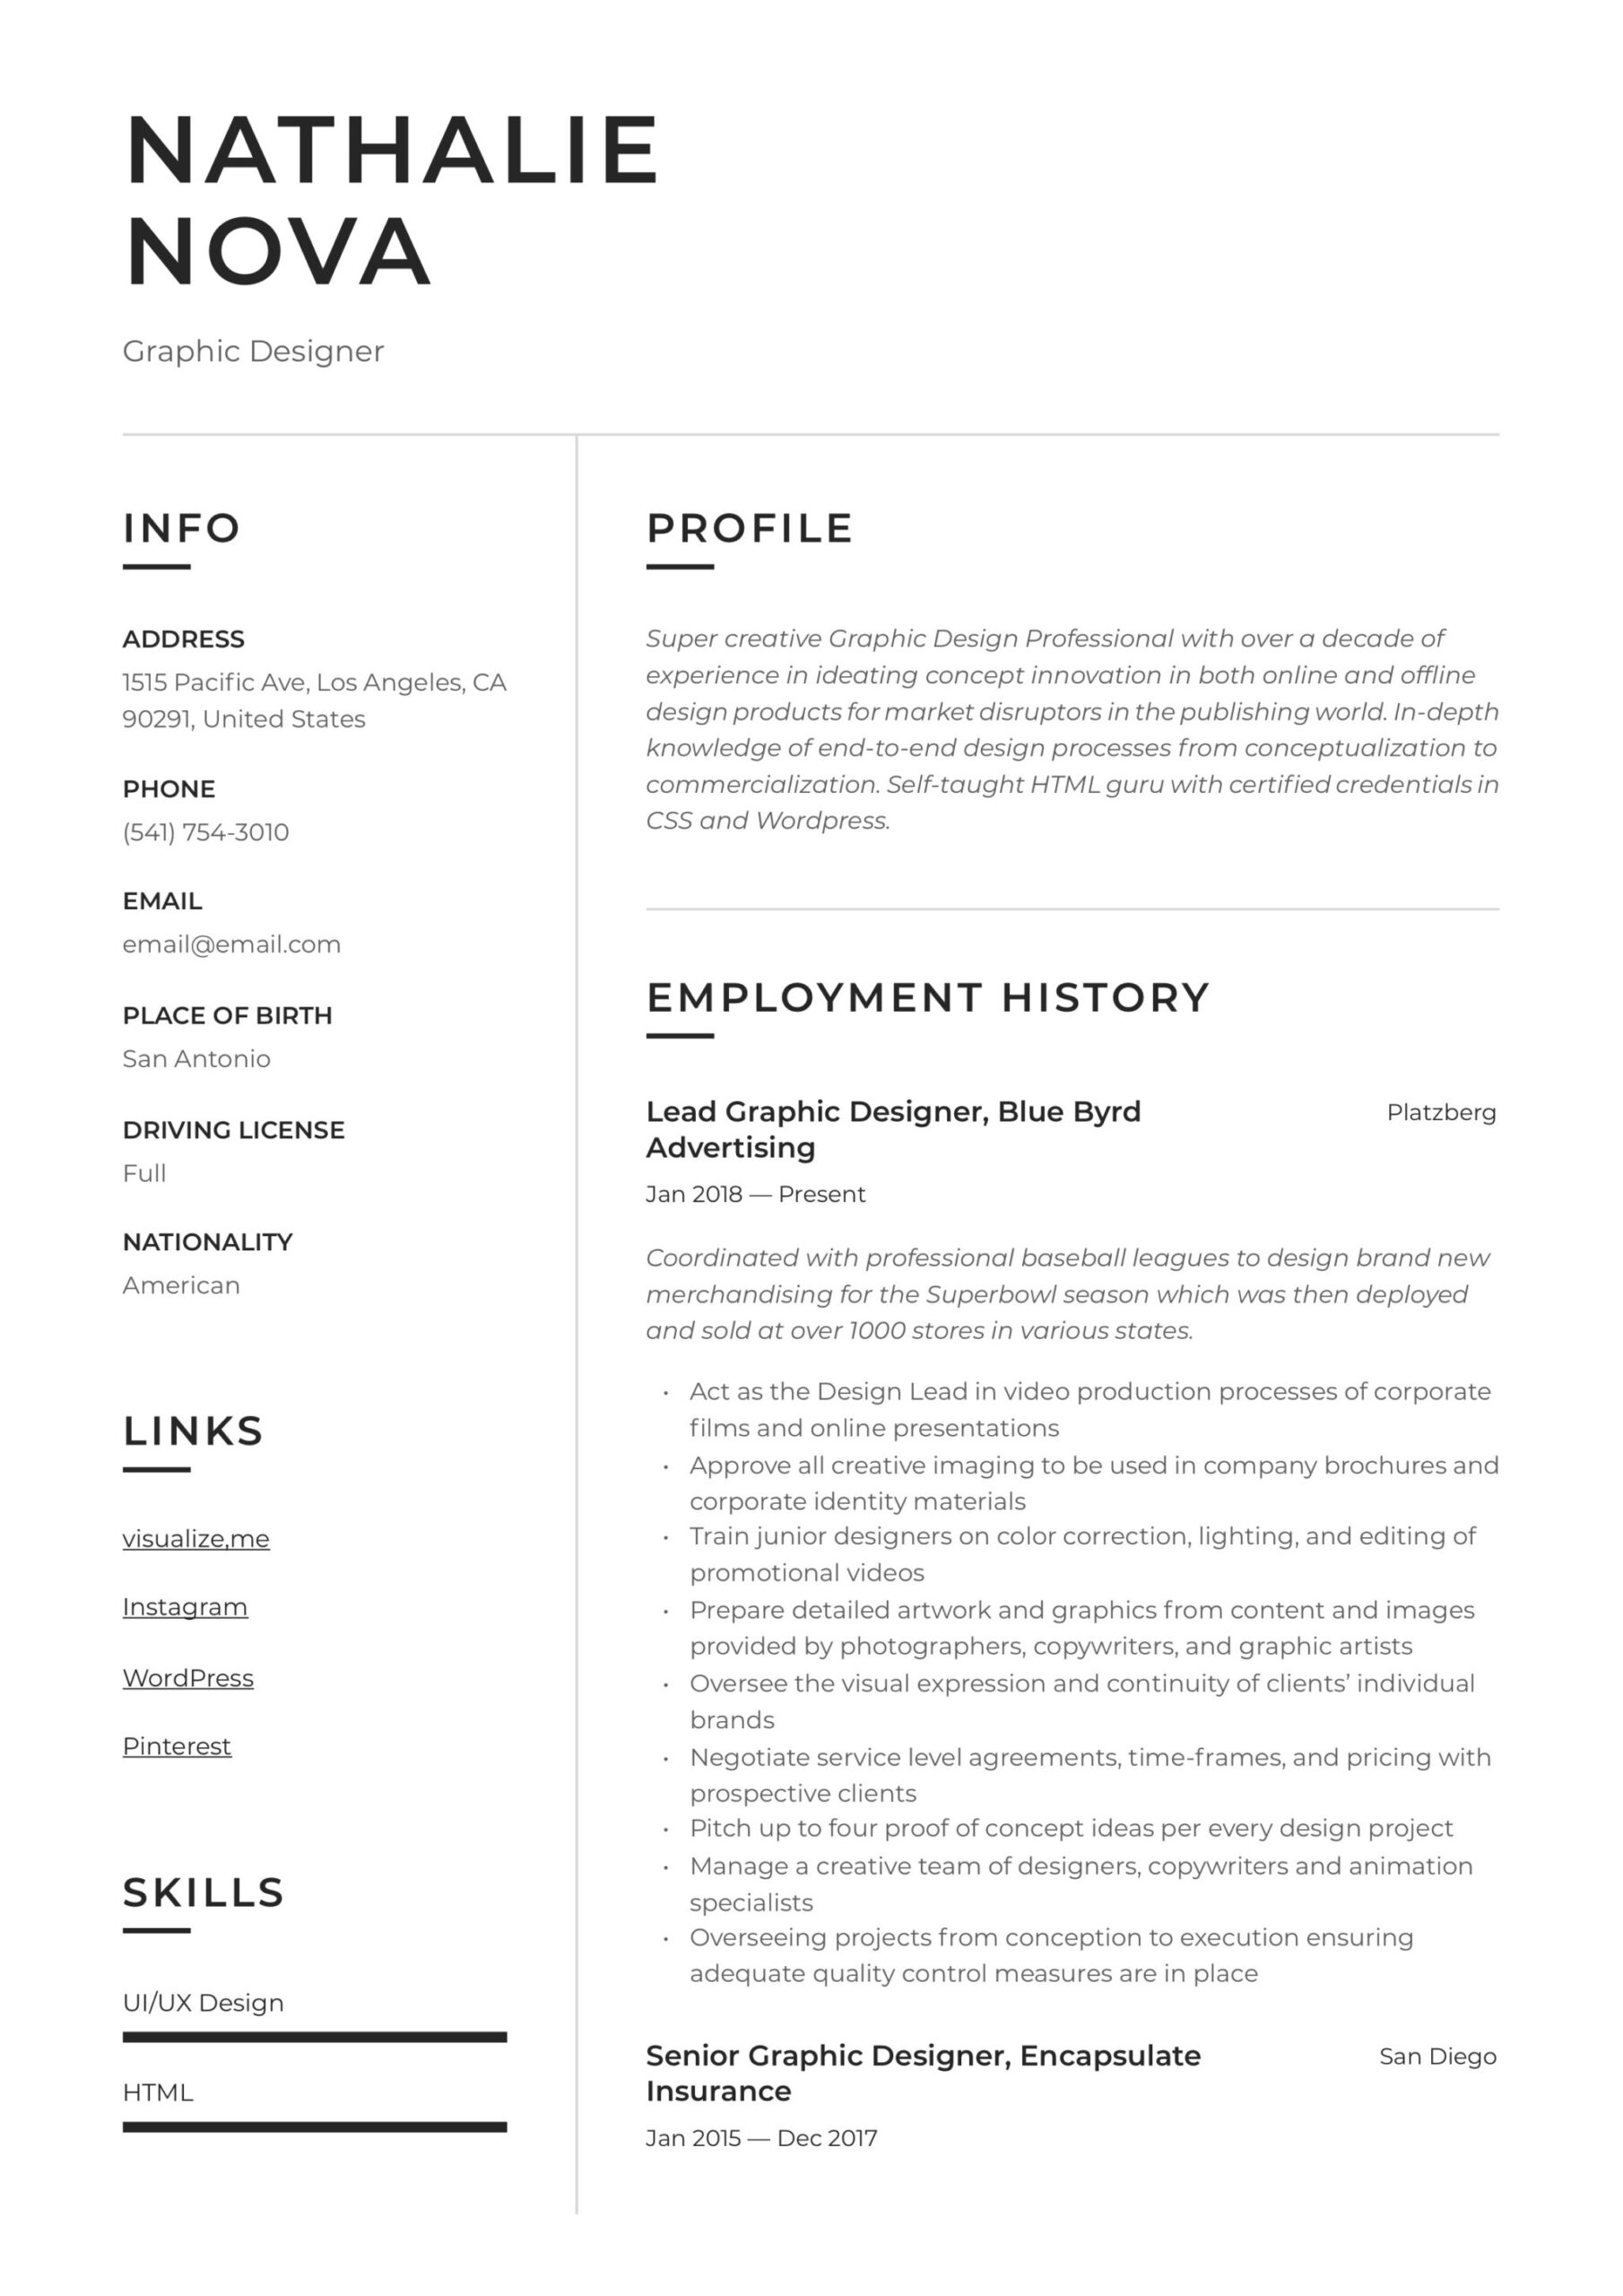 graphic designer resume writing guide examples freelance design open office templates Resume Freelance Graphic Design Resume